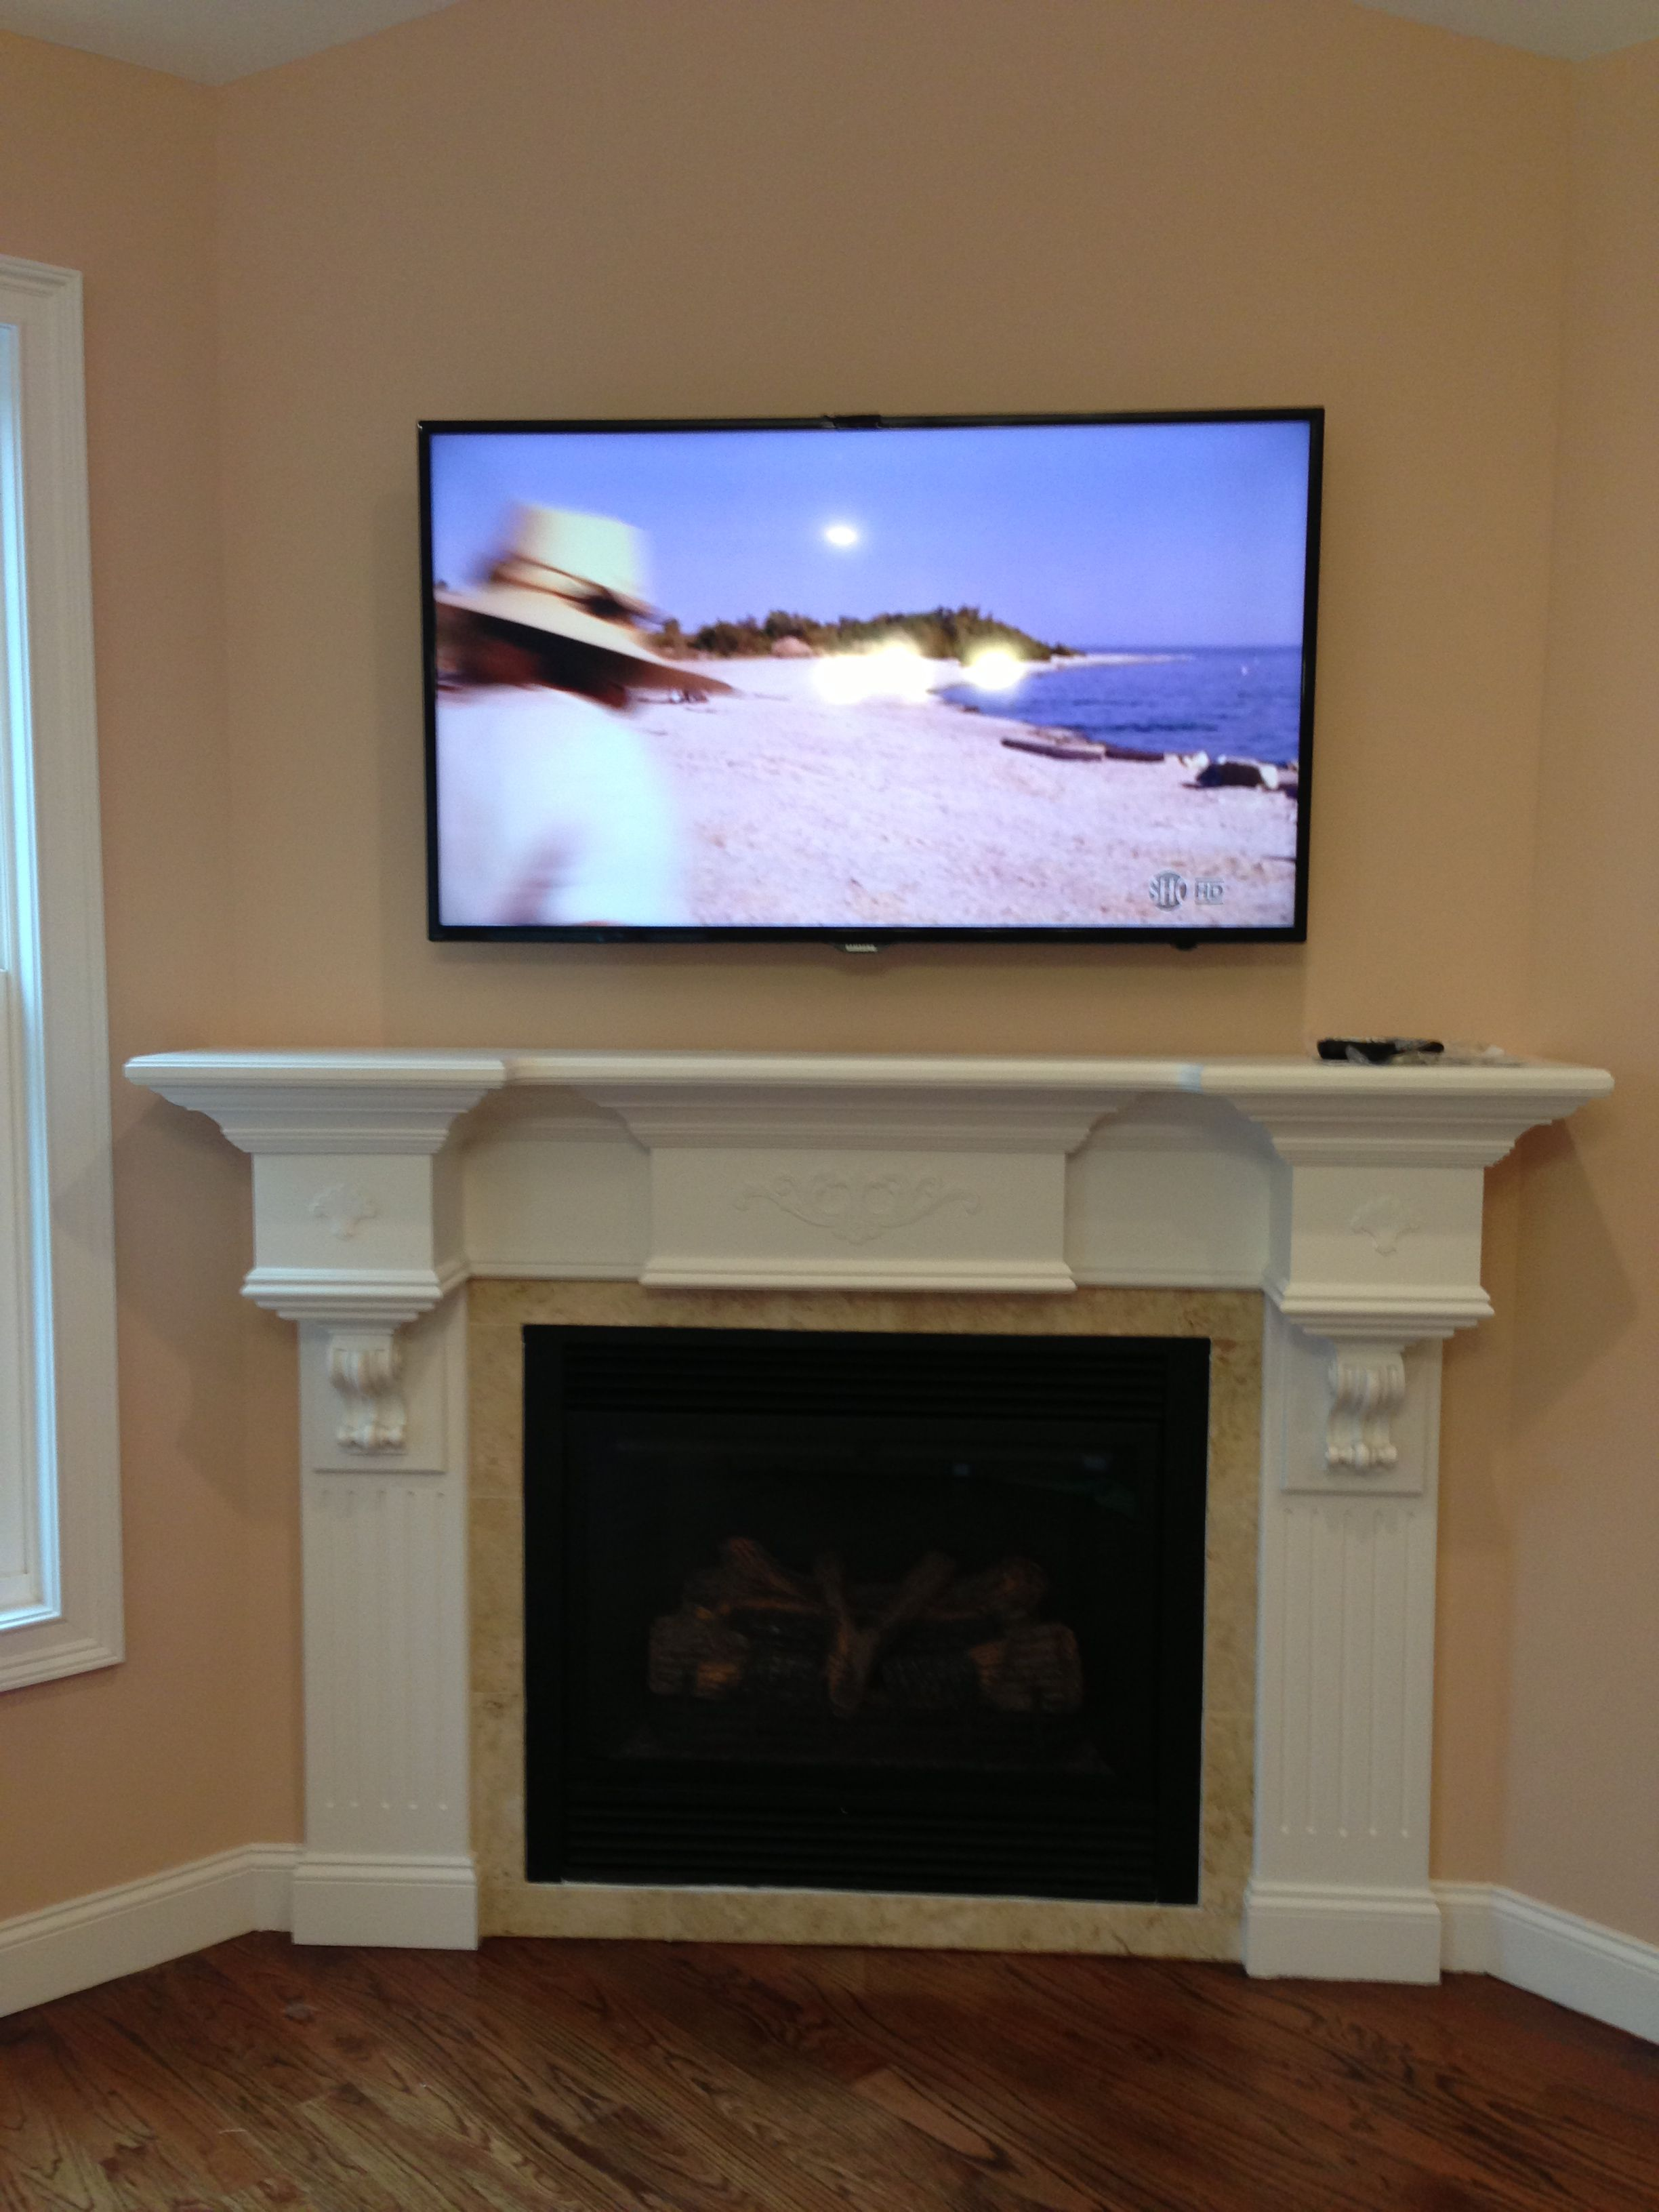 Tv Over Fireplace Hidden Cable Box Freestanding Fireplace Fireplace Built Ins Classic Fireplace